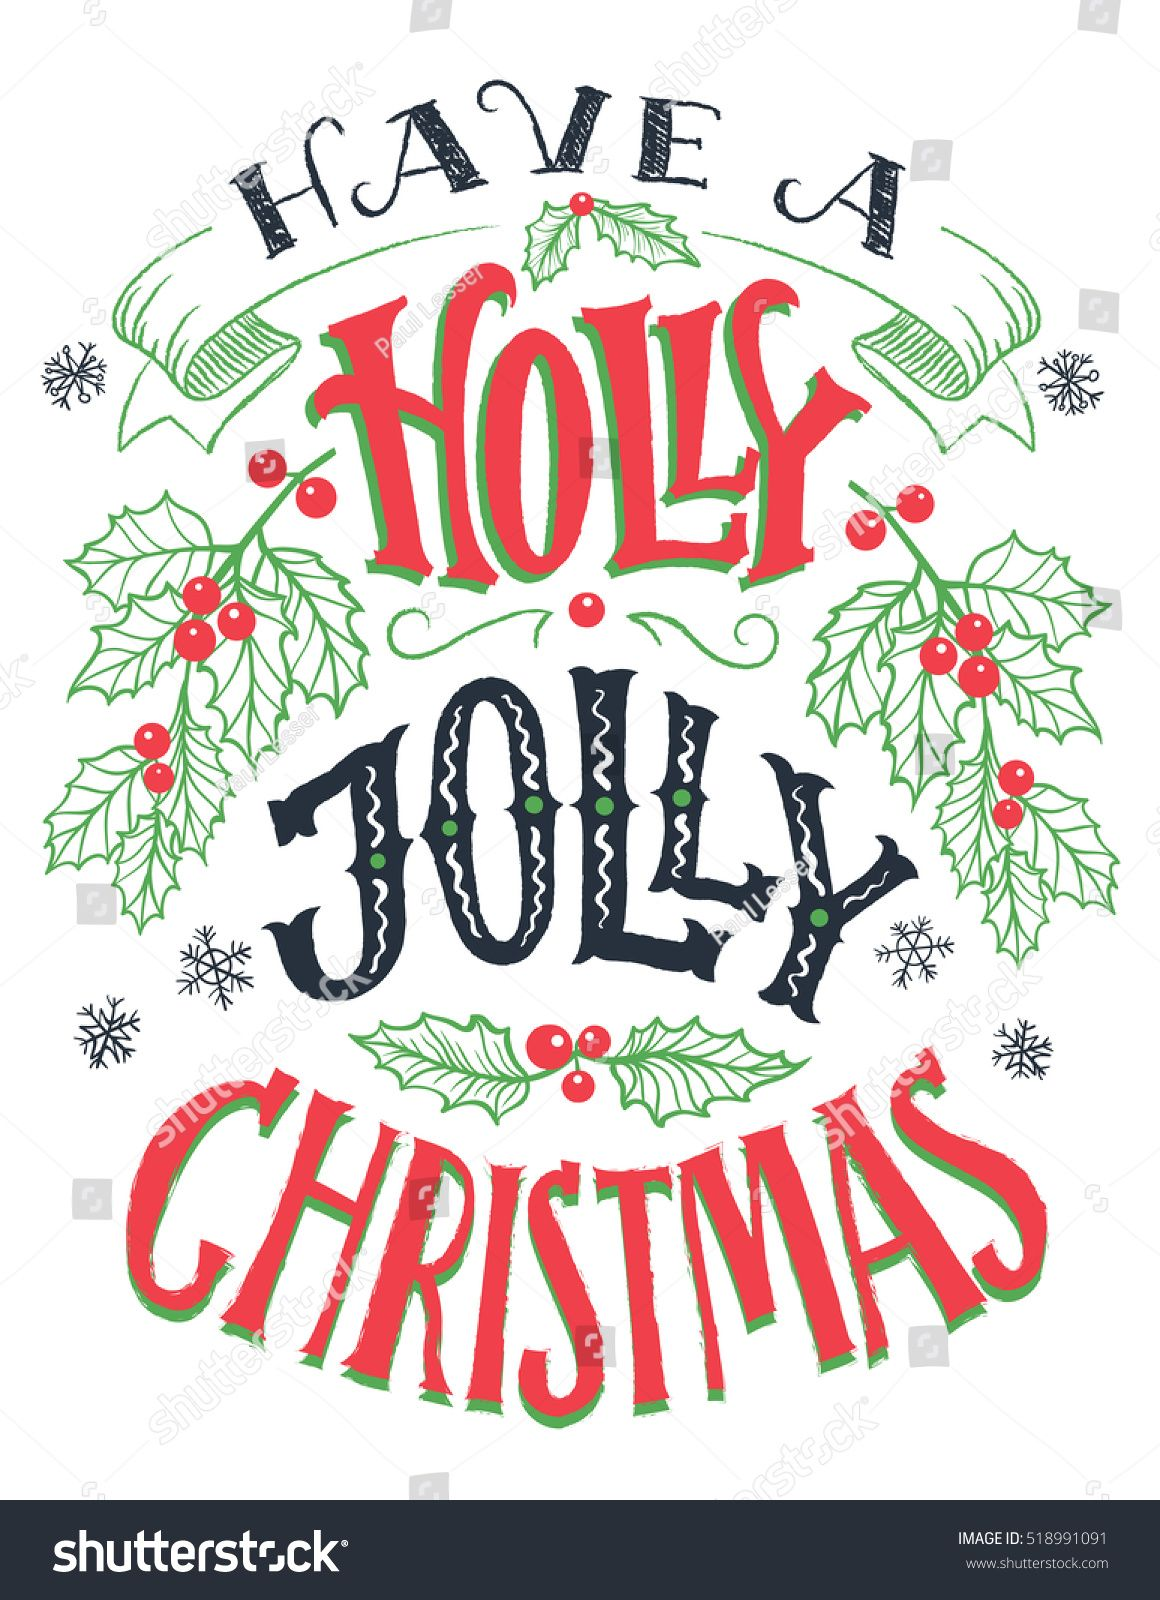 have a holly jolly christmas vintage hand lettering isolated on white background holiday typography poster - Have A Holly Jolly Christmas